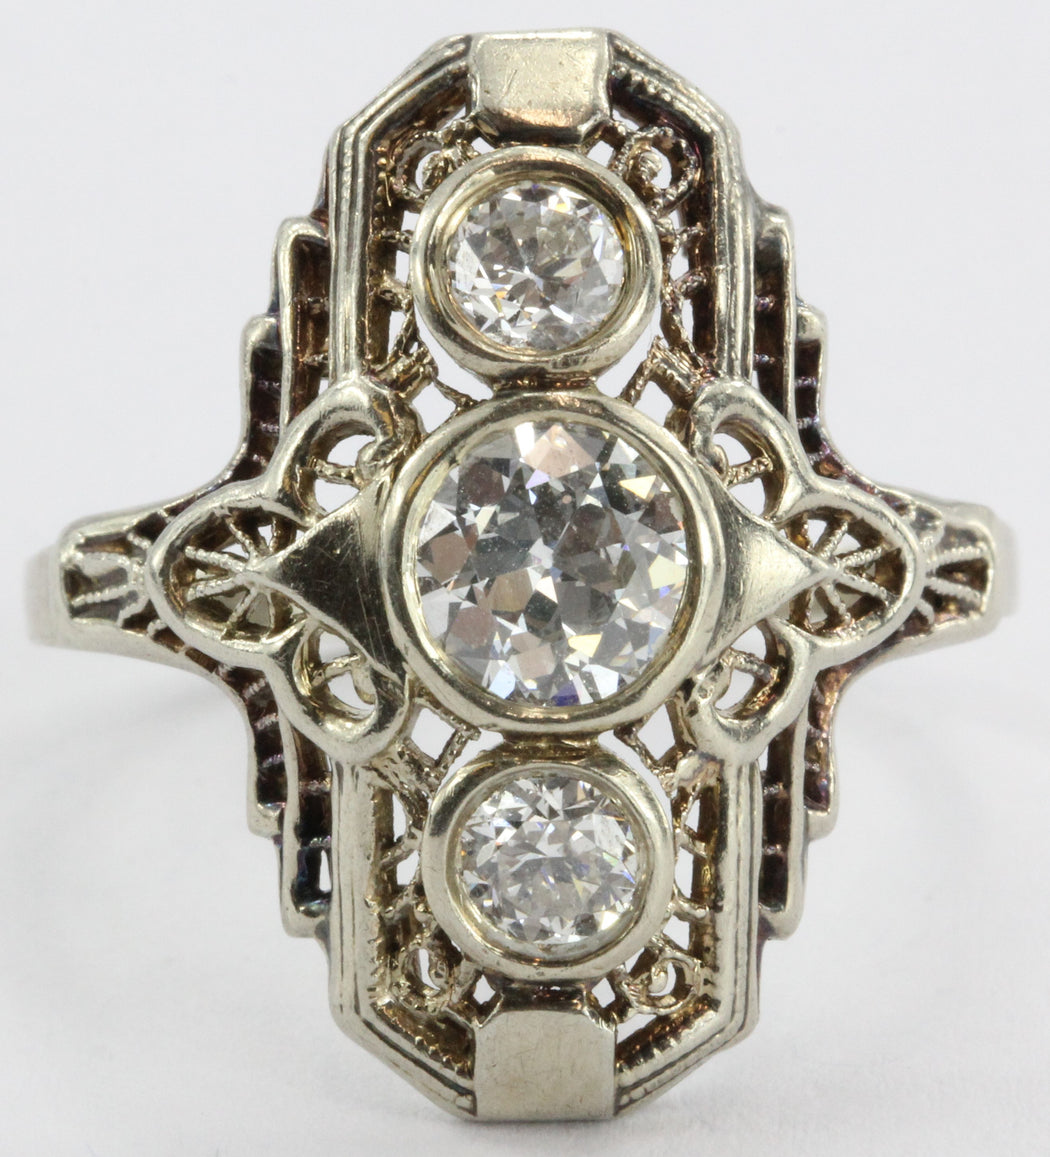 Estate Art Deco Filigree 14k Gold 1.35 carat tw Diamond Engagement Ring